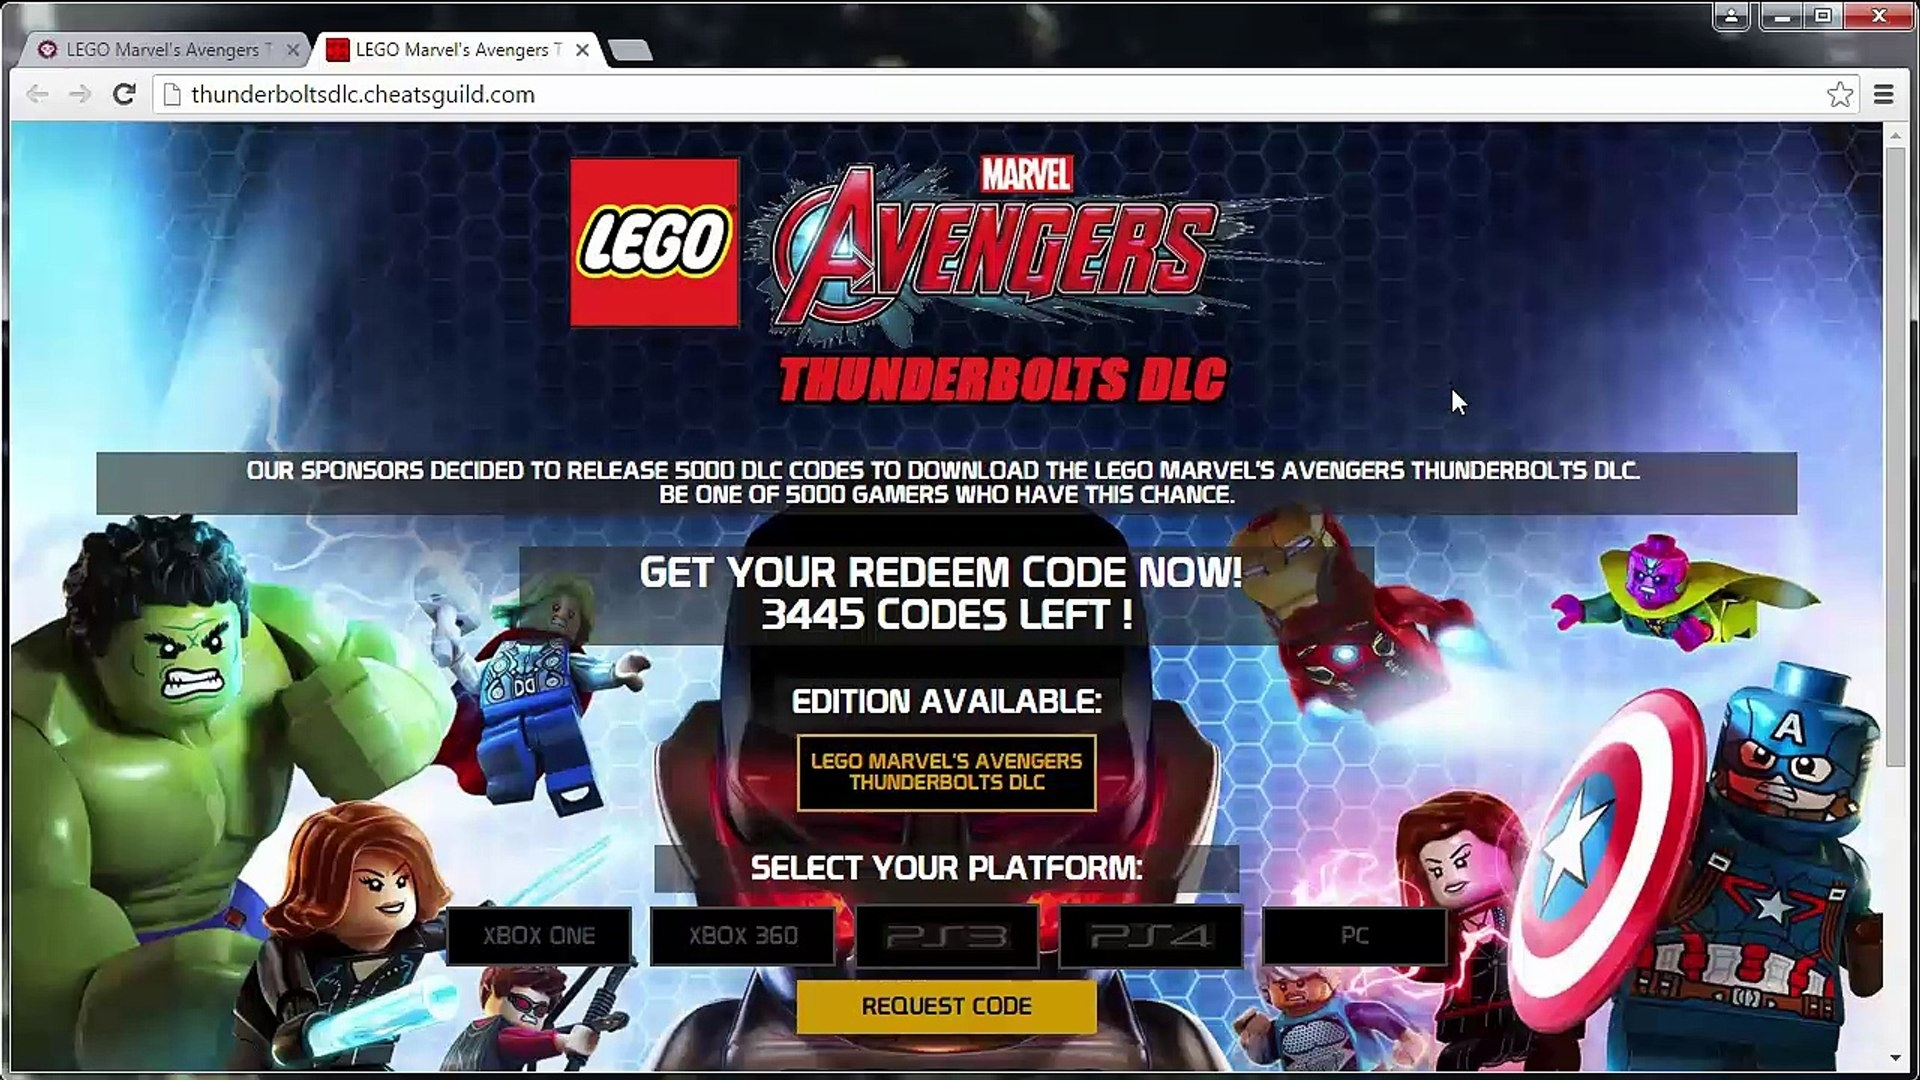 Lego Marvel's Avengers Thunderbolts Dlc Code Generator - Video in Codes For Lego Marvel Avengers